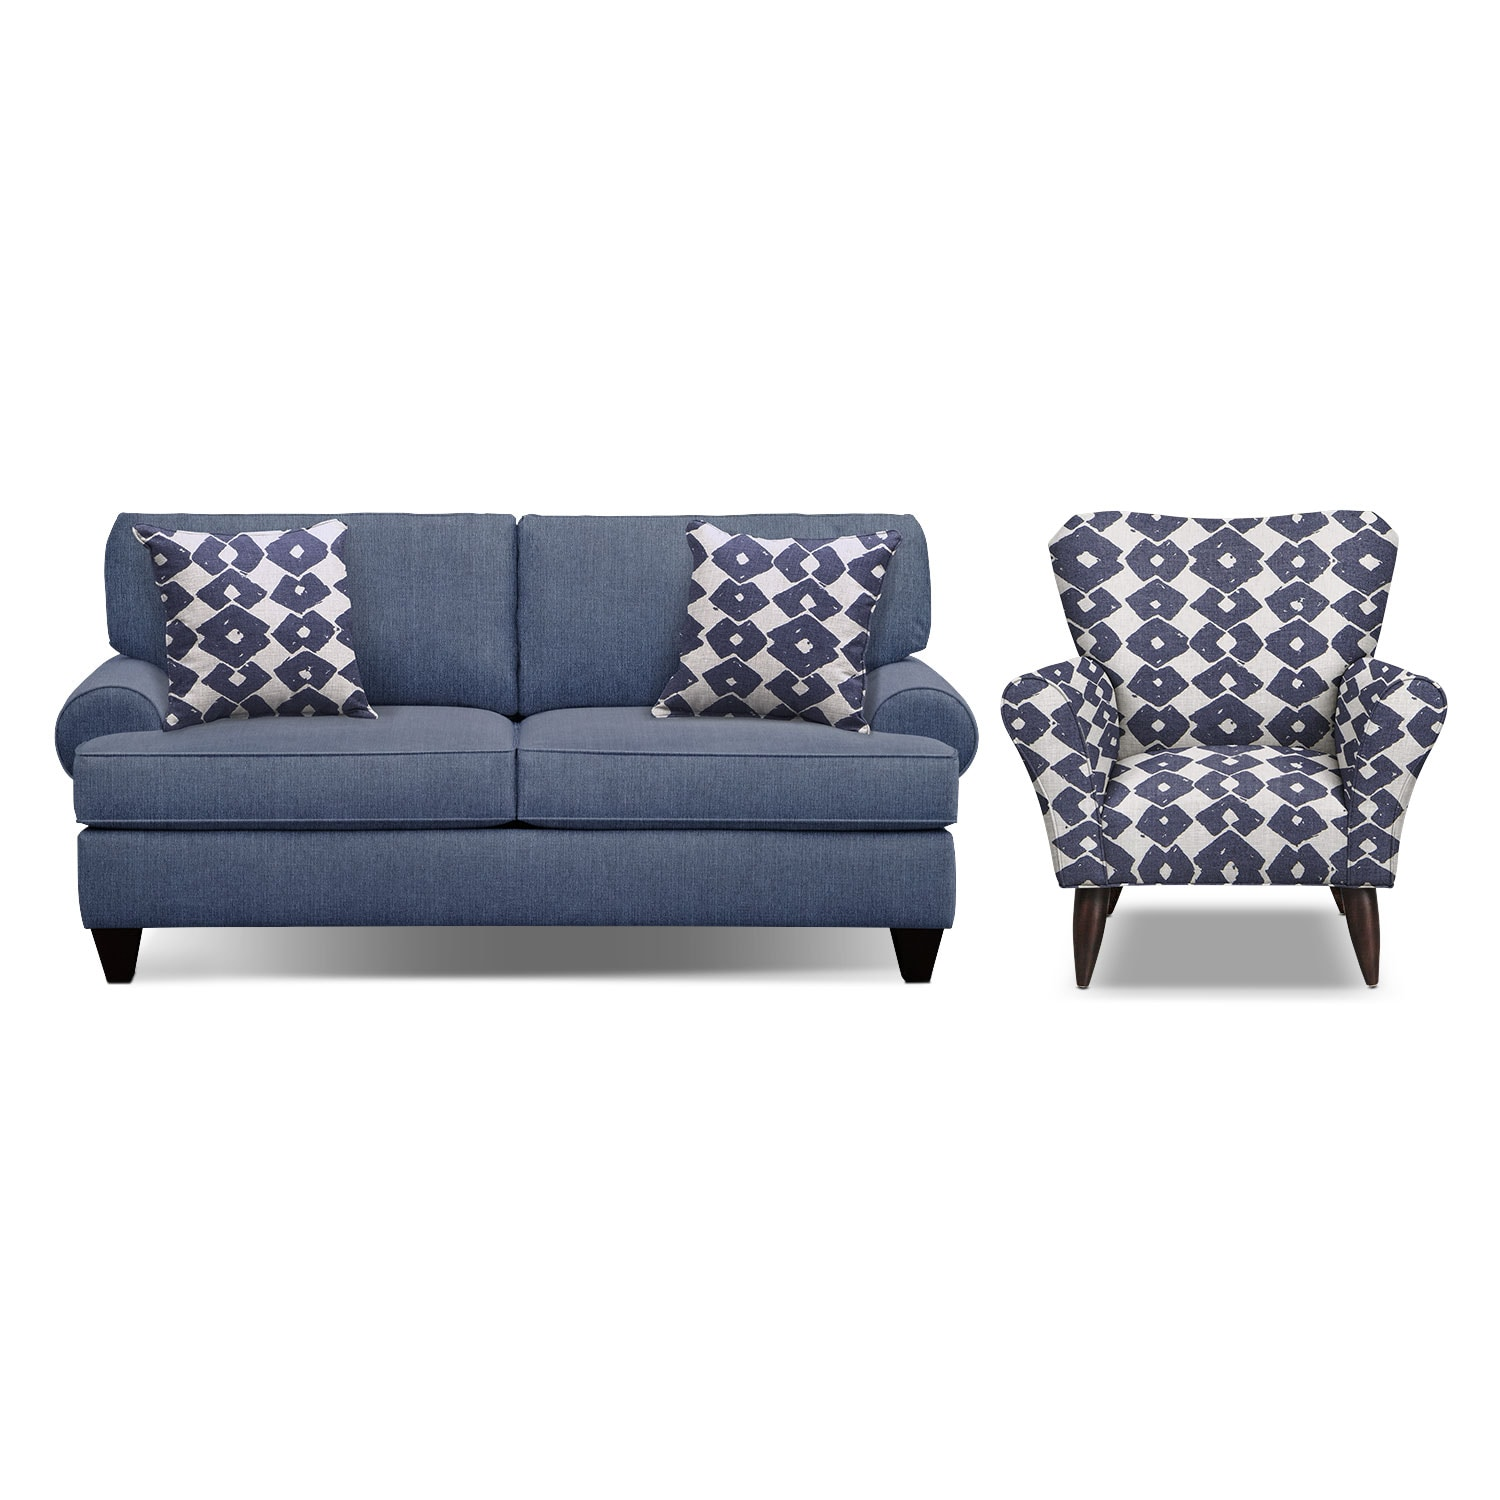 Bailey blue 79 sofa and accent chair set by kroehler